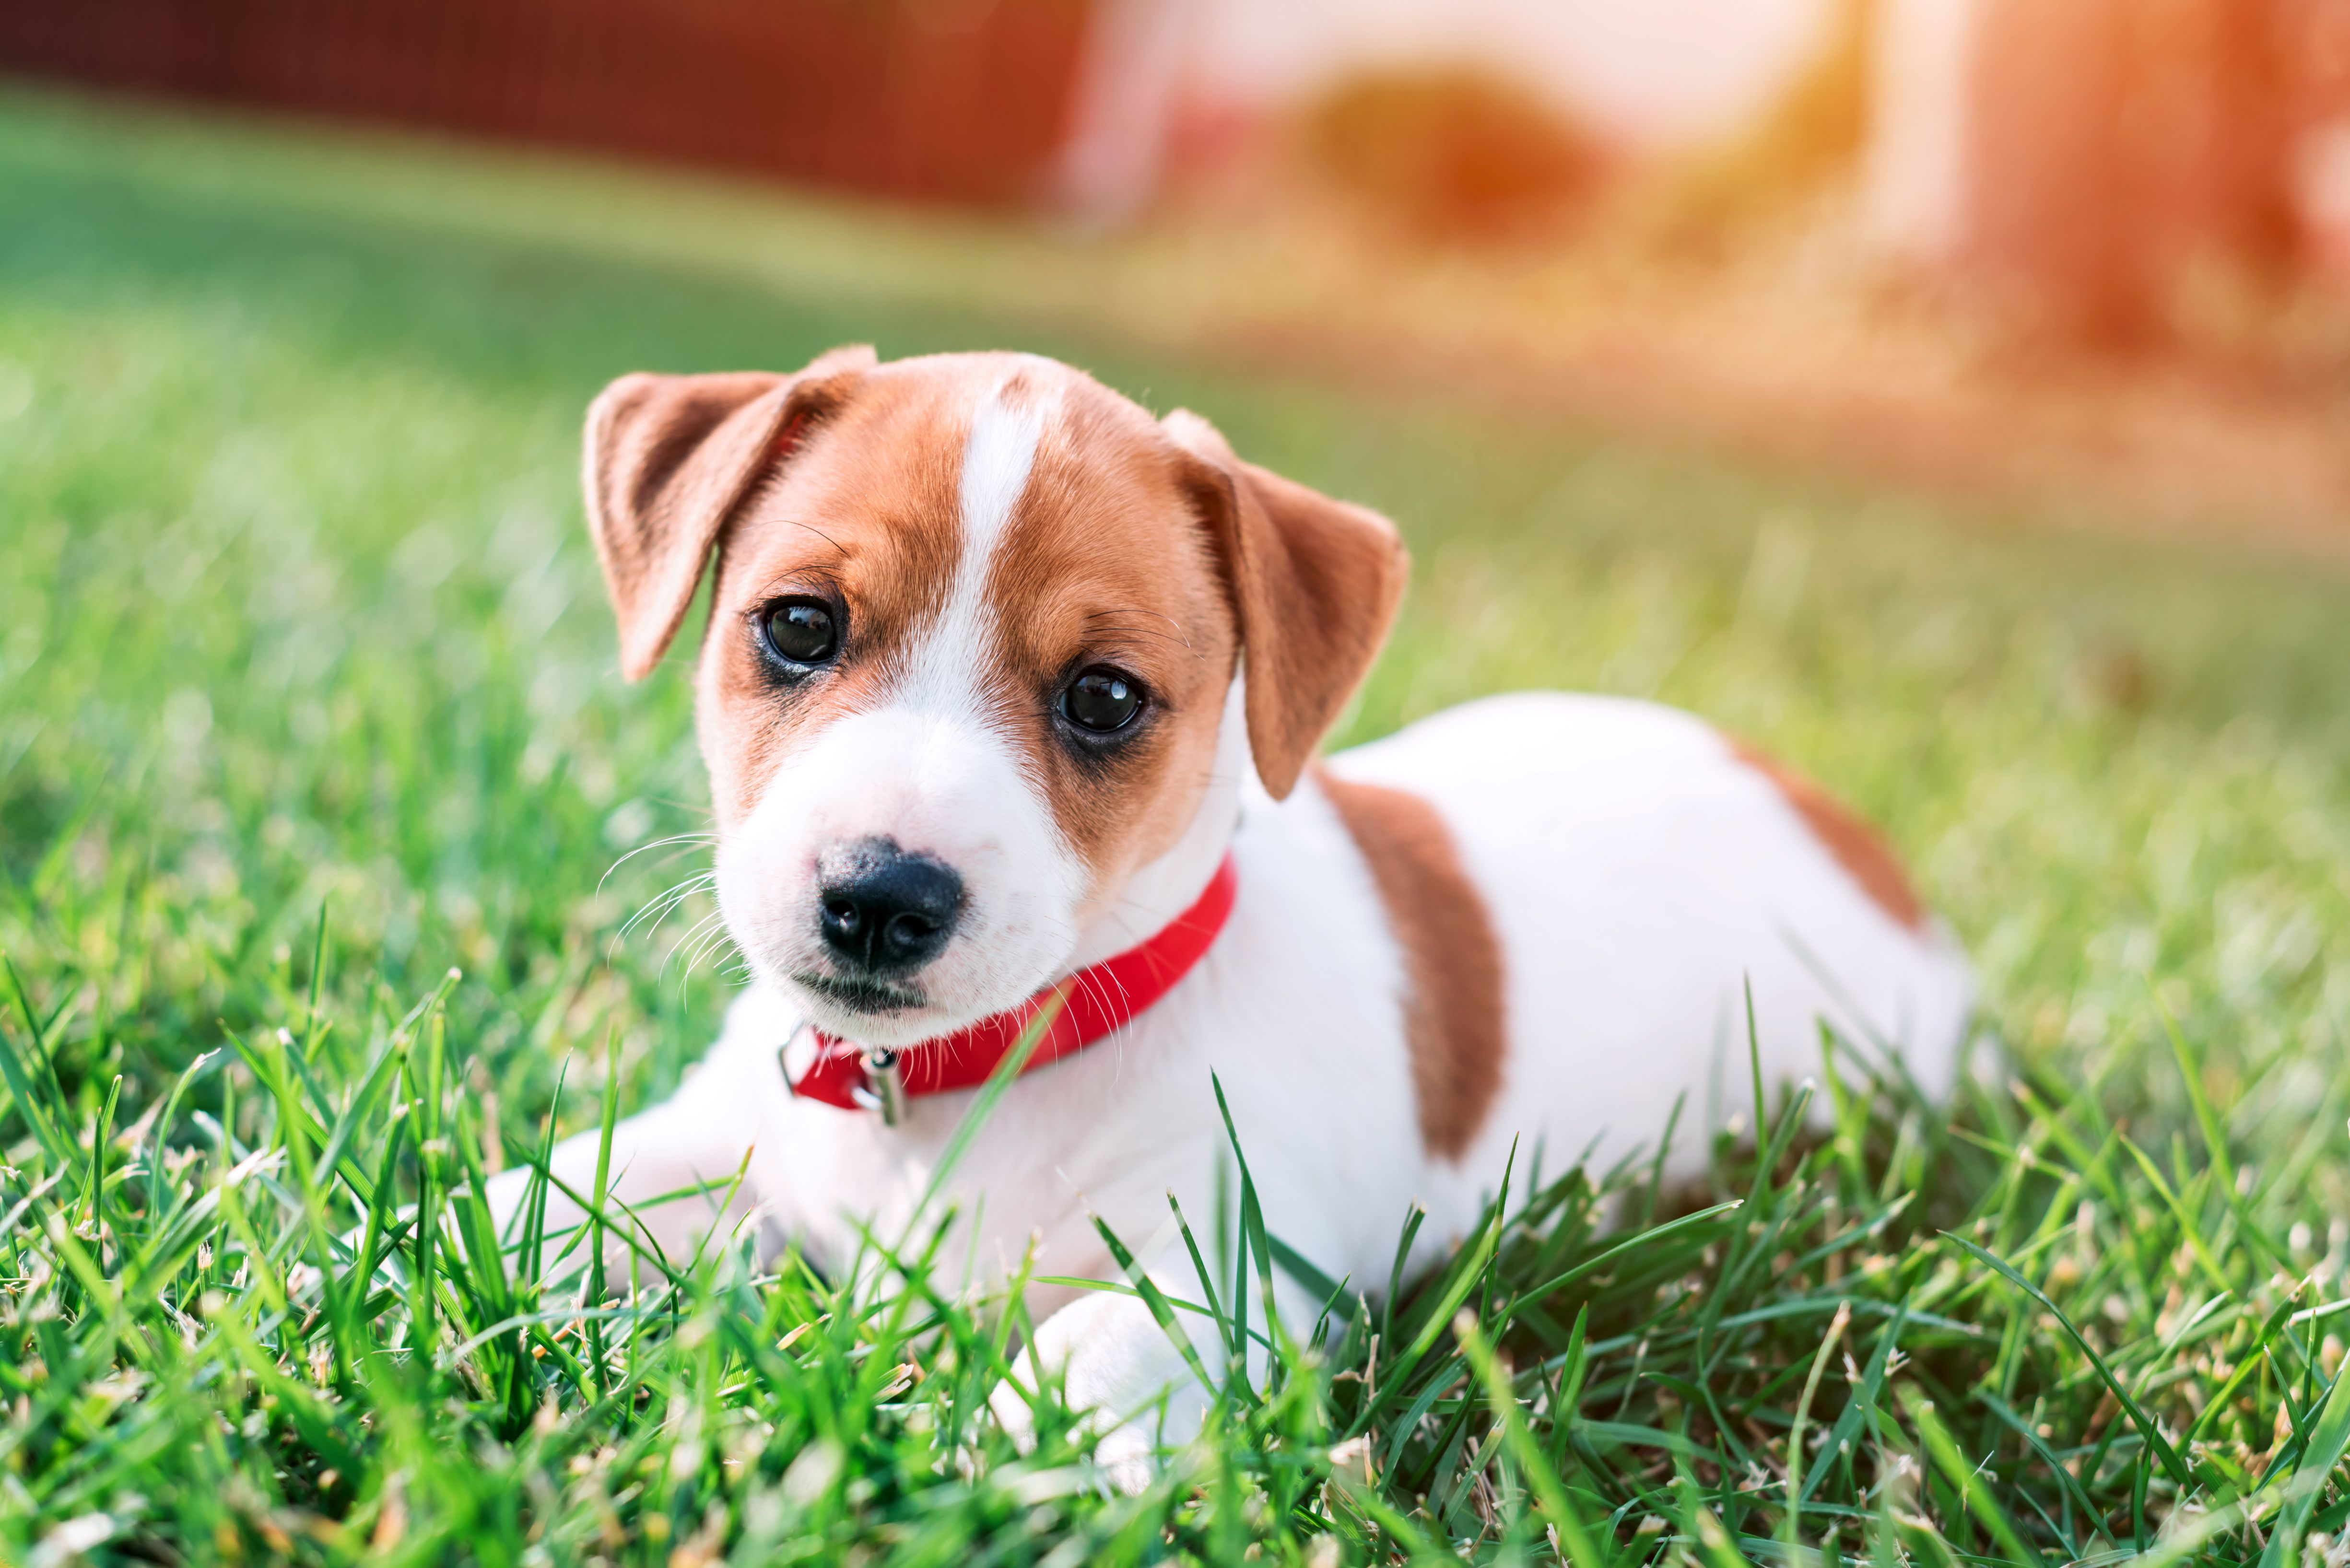 Jack Russell Terrier Dog4us Jack Russell Terrier Puppies Jack Russell Jack Russell Puppies